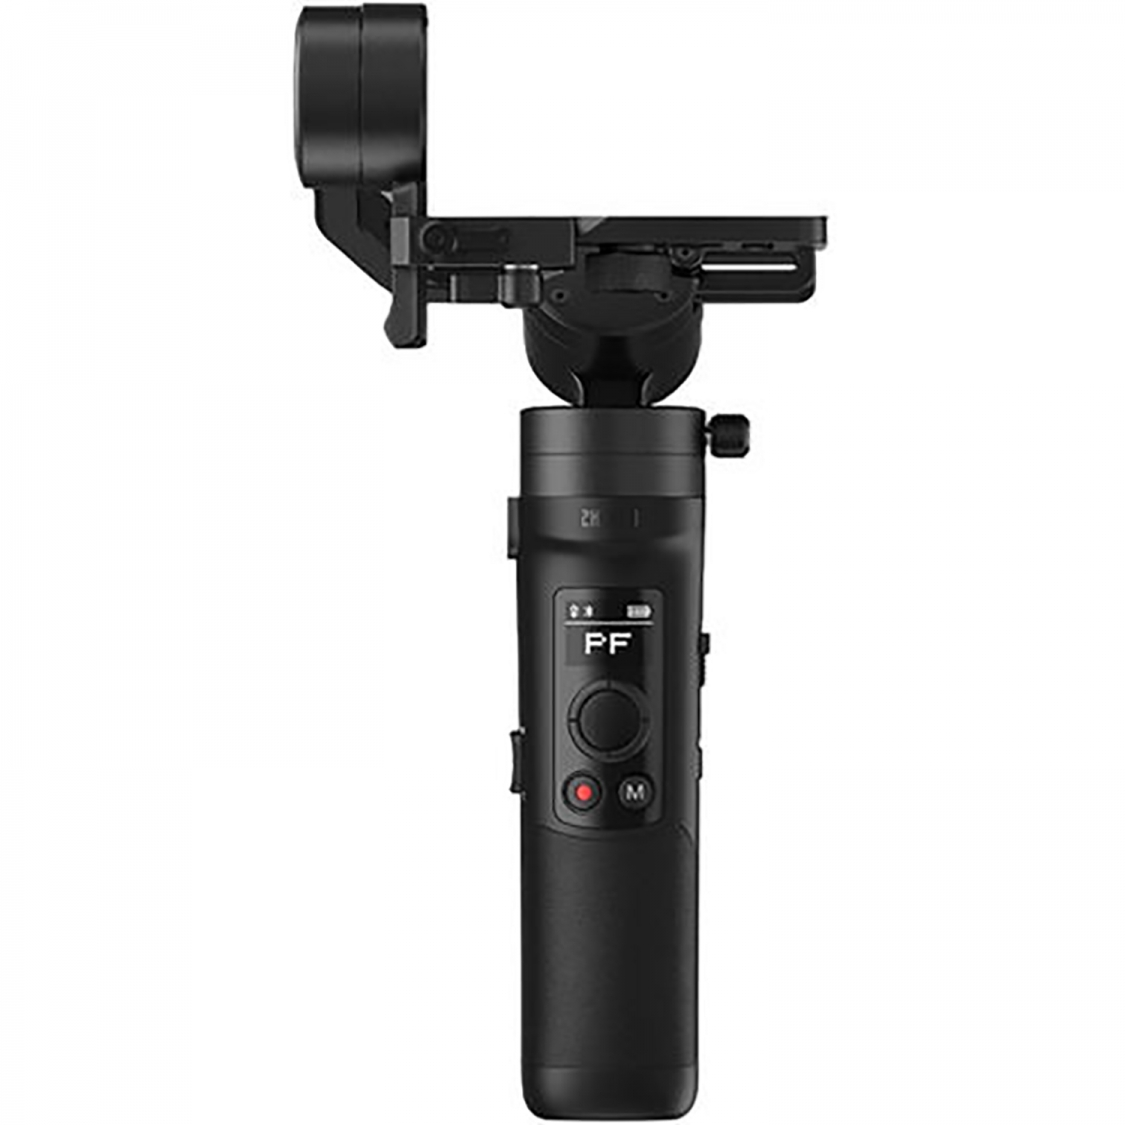 Zhiyun M2 Stabilizer For Smartphone, Action and Mirrorless Cameras